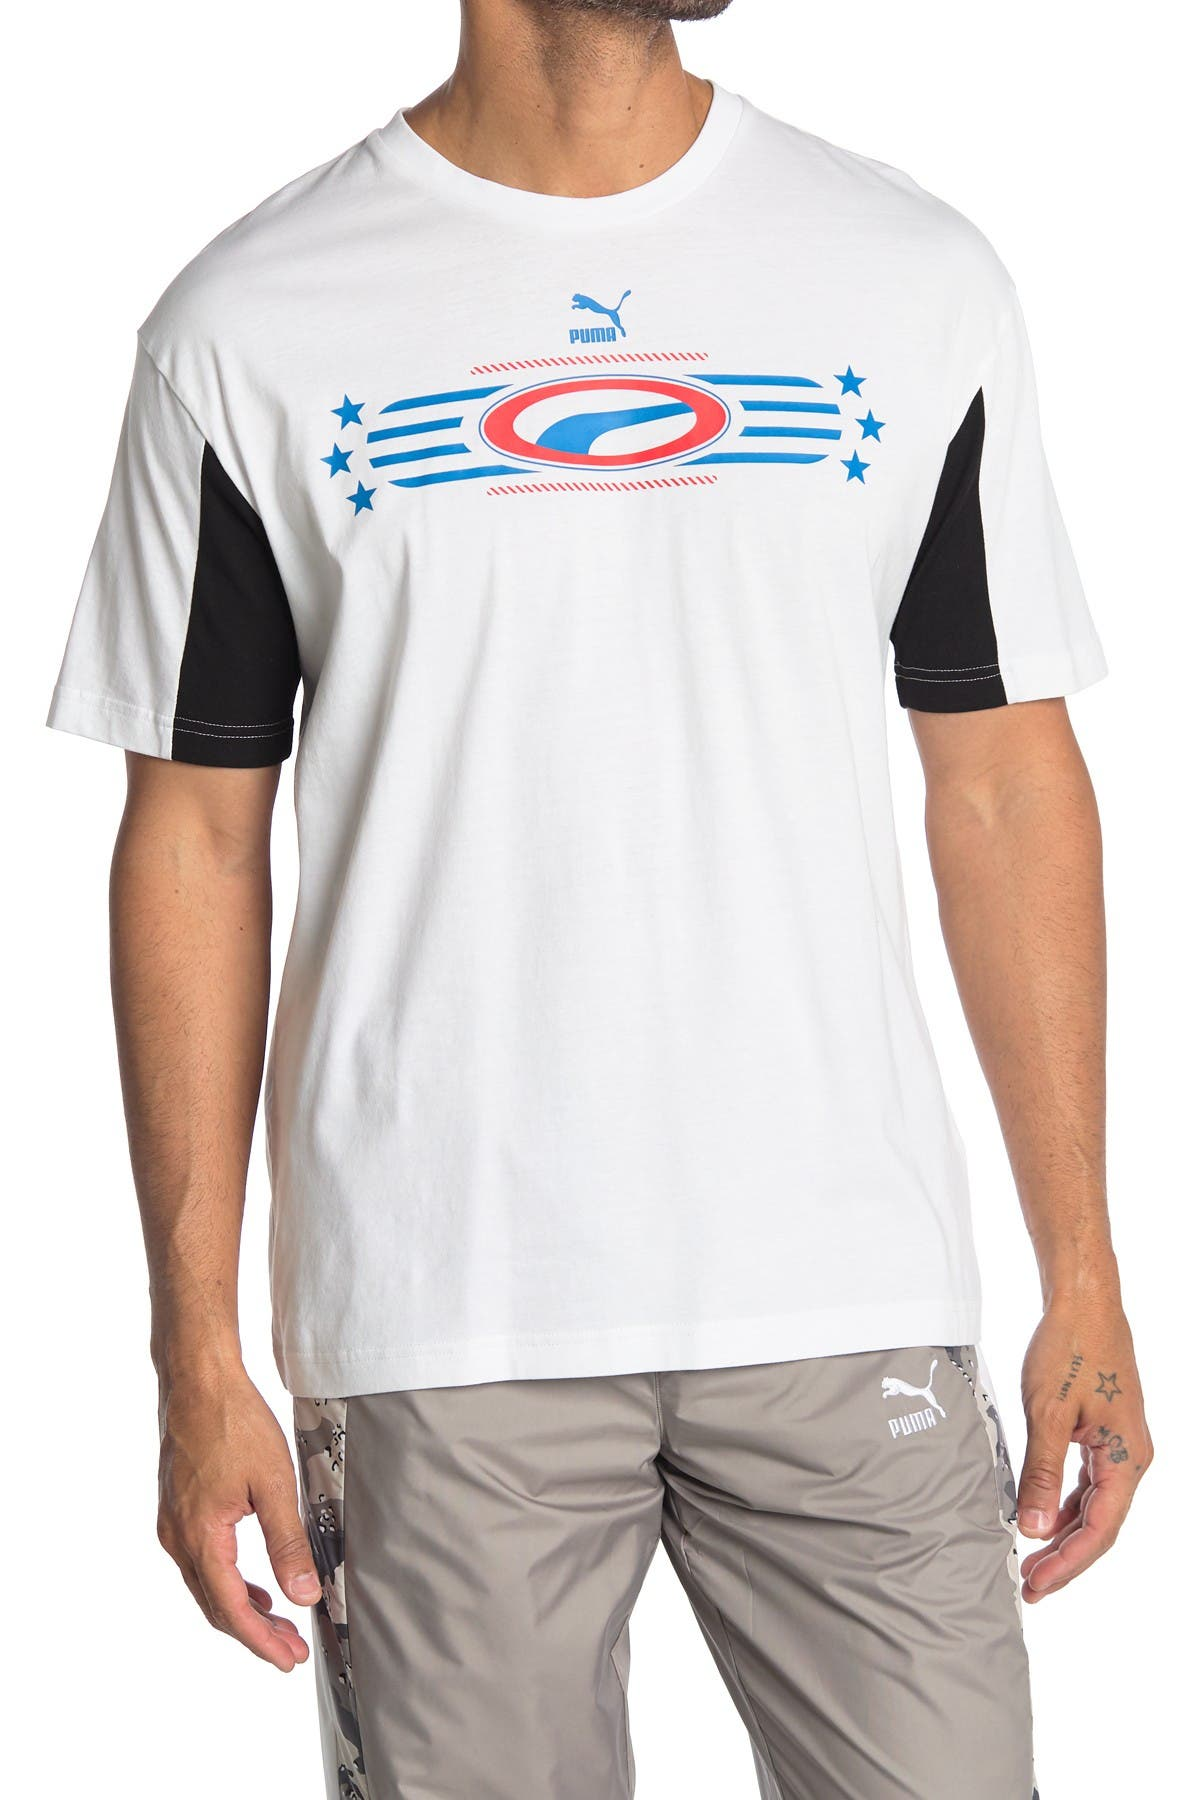 Image of PUMA Retro '90s Graphic Logo T-Shirt